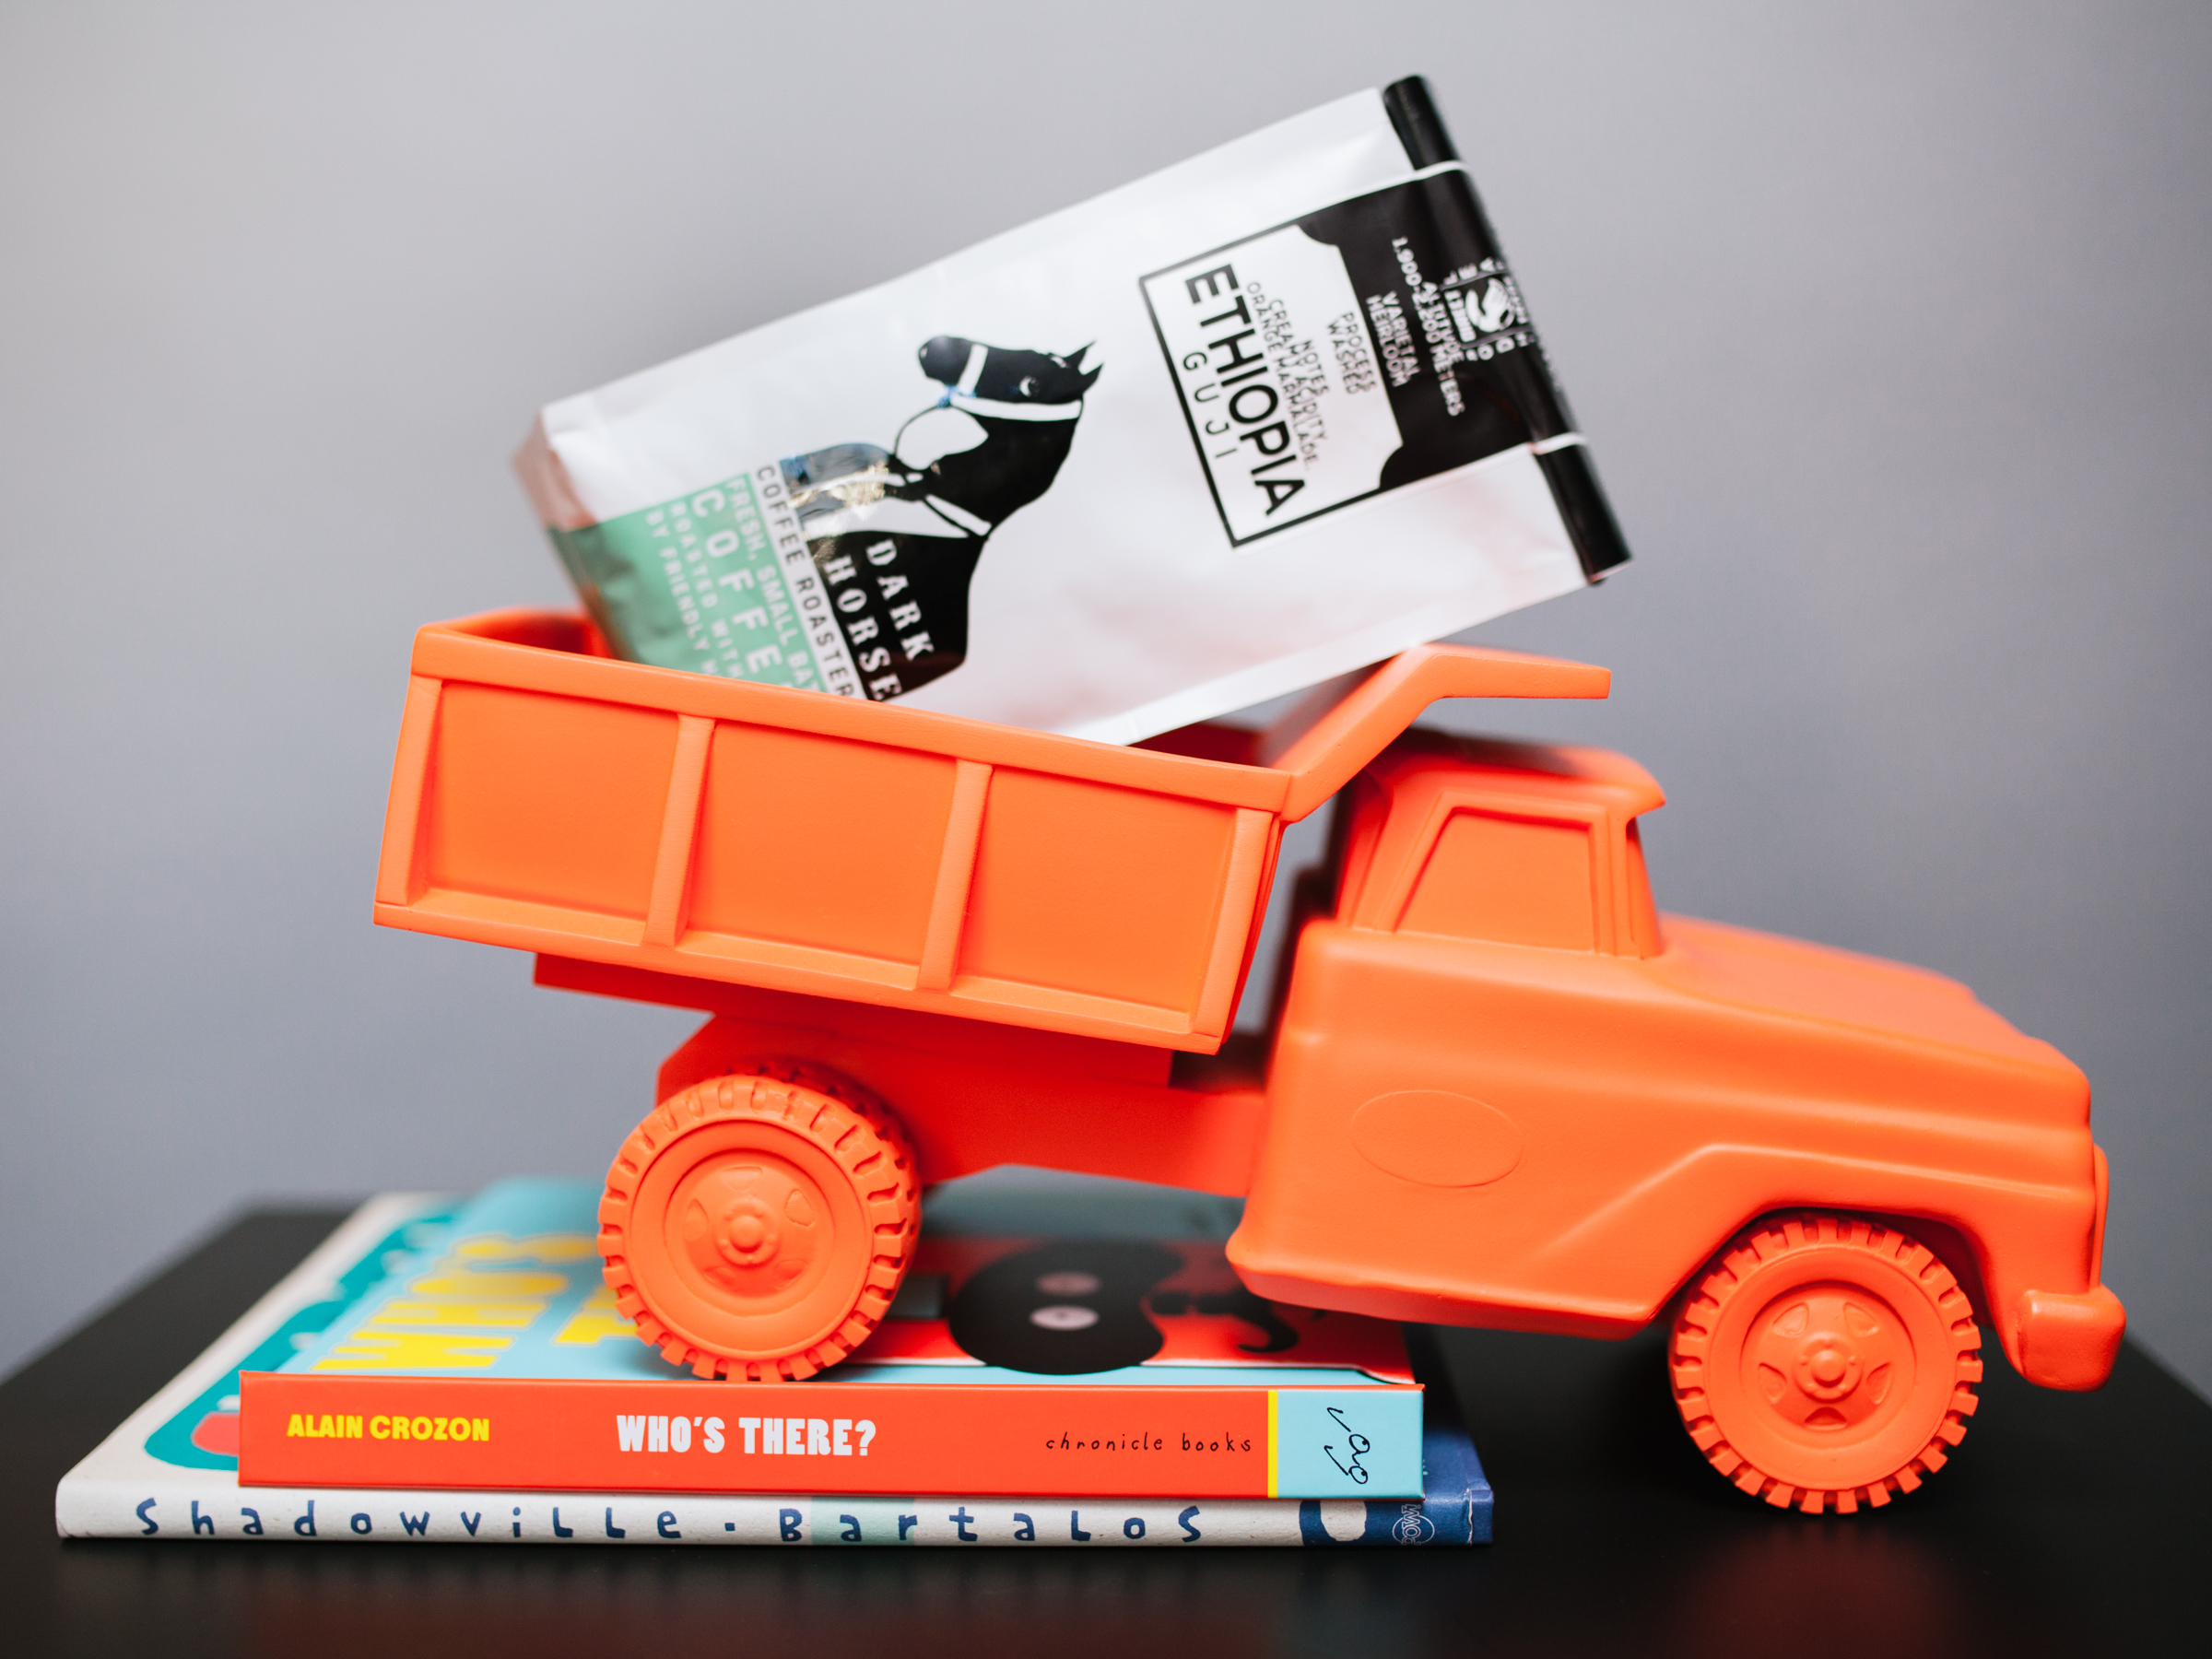 Neon Orange Pickup Truck: $110. Who's There? by Alain Crozon $10.99. Shadowville by Michael Bartalo: $16.95. Photo by Julie Rings.